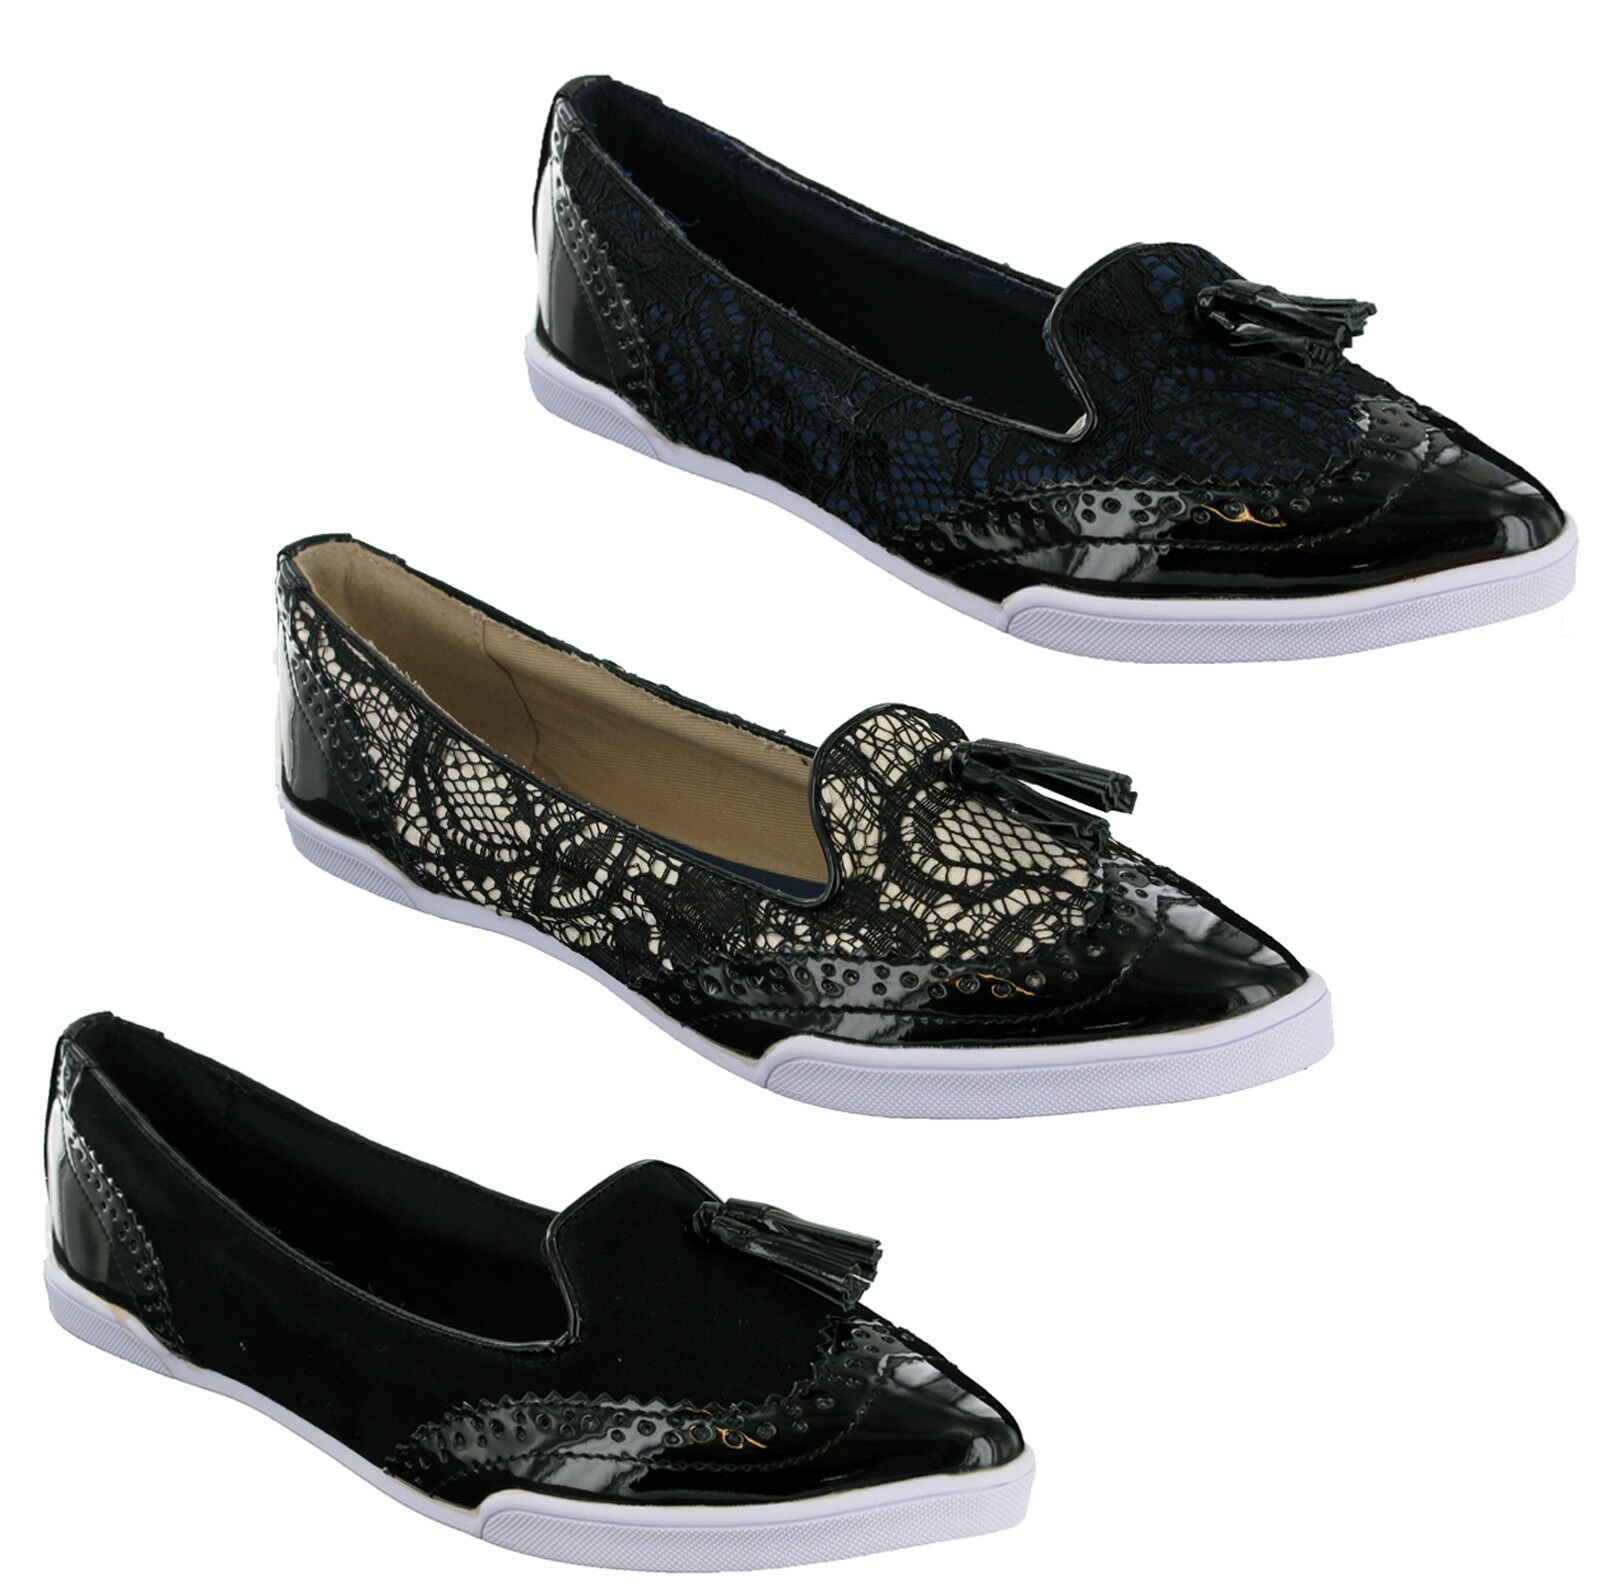 Butterfly Twists Adrienne Flat Ballerina On Womens Pumps Shoes Slip On Ballerina Brogue Style e7f298